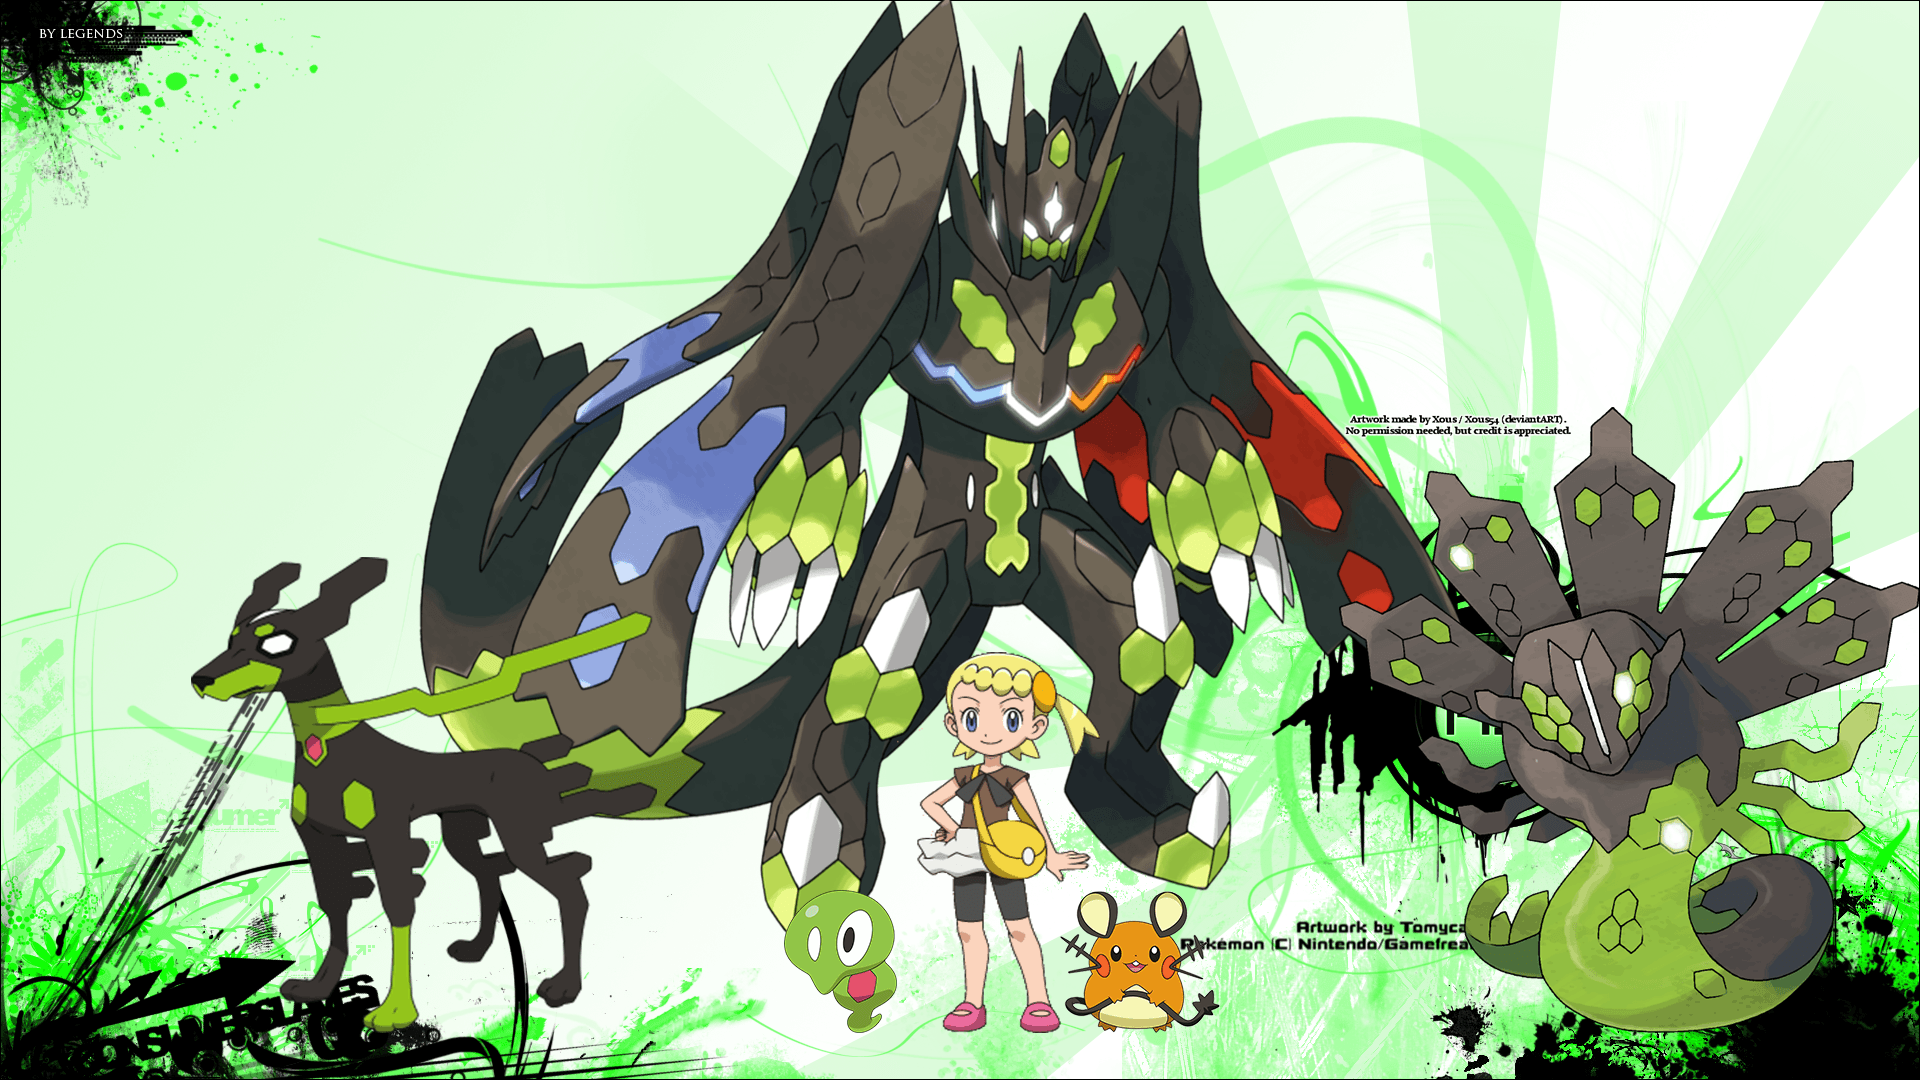 Pokemon Xyz Binnie And Zygote by SizarStathis on DeviantArt